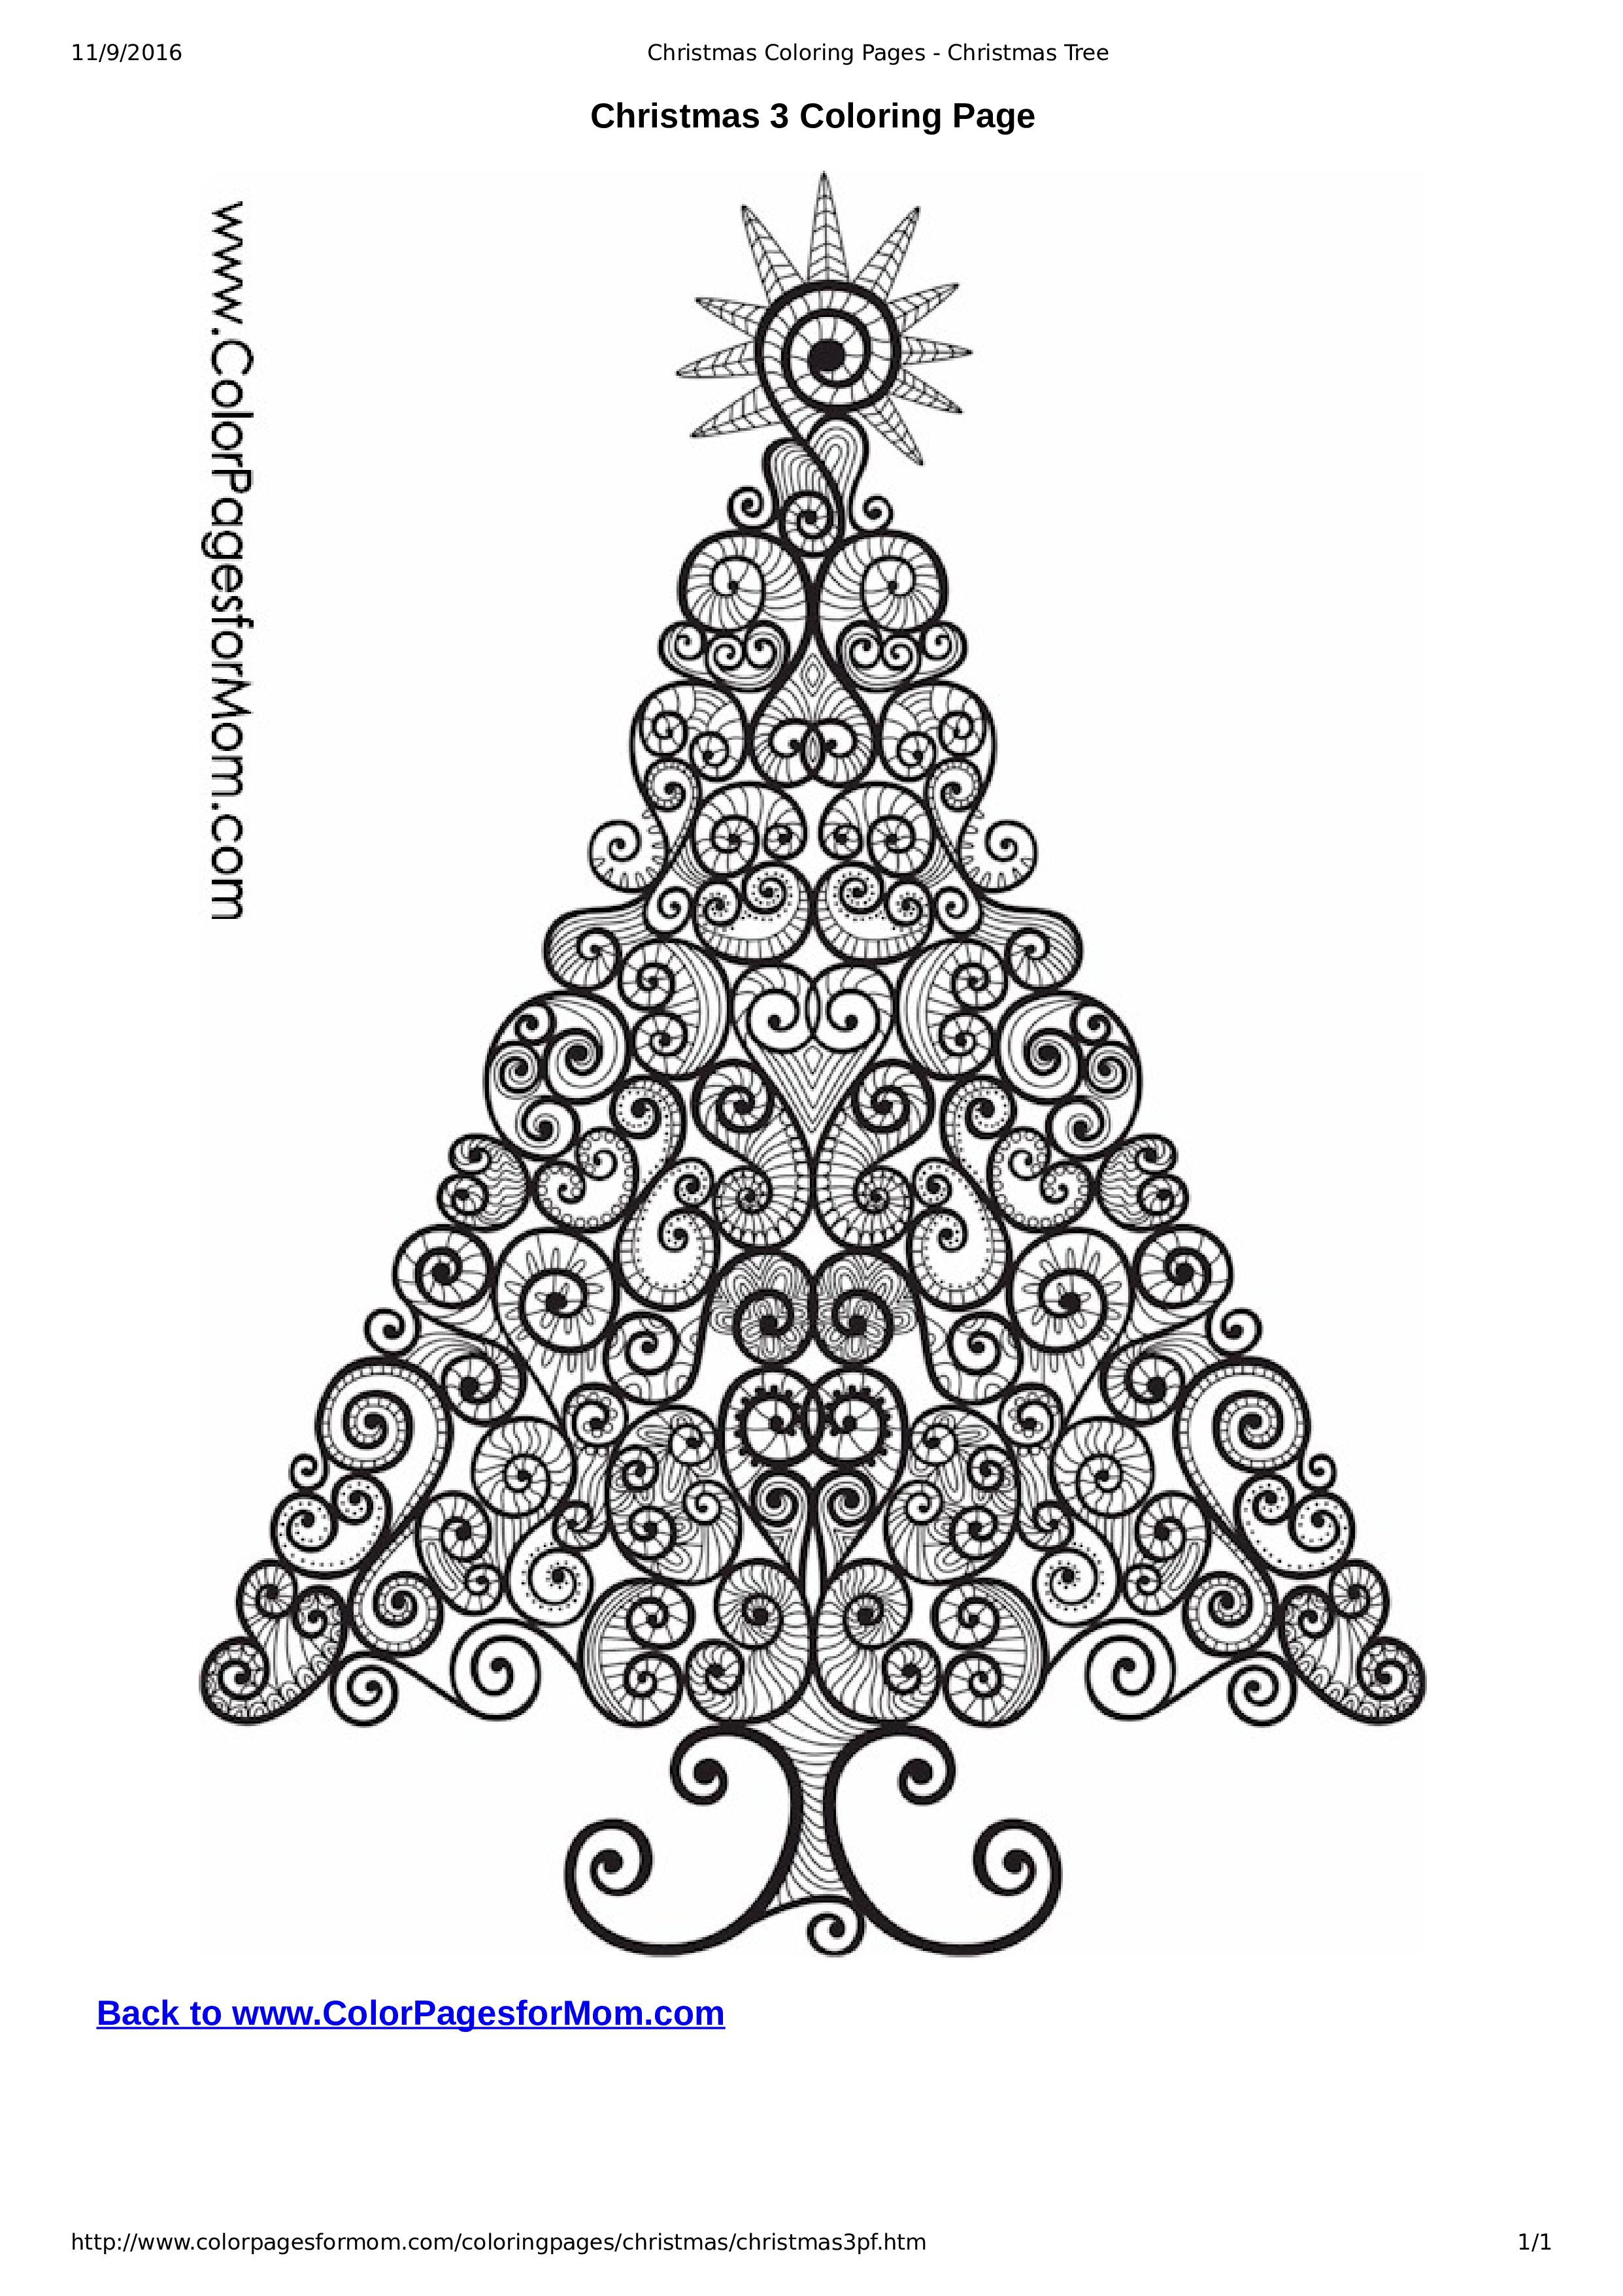 Christmas Coloring Page For Adults  How To Create A